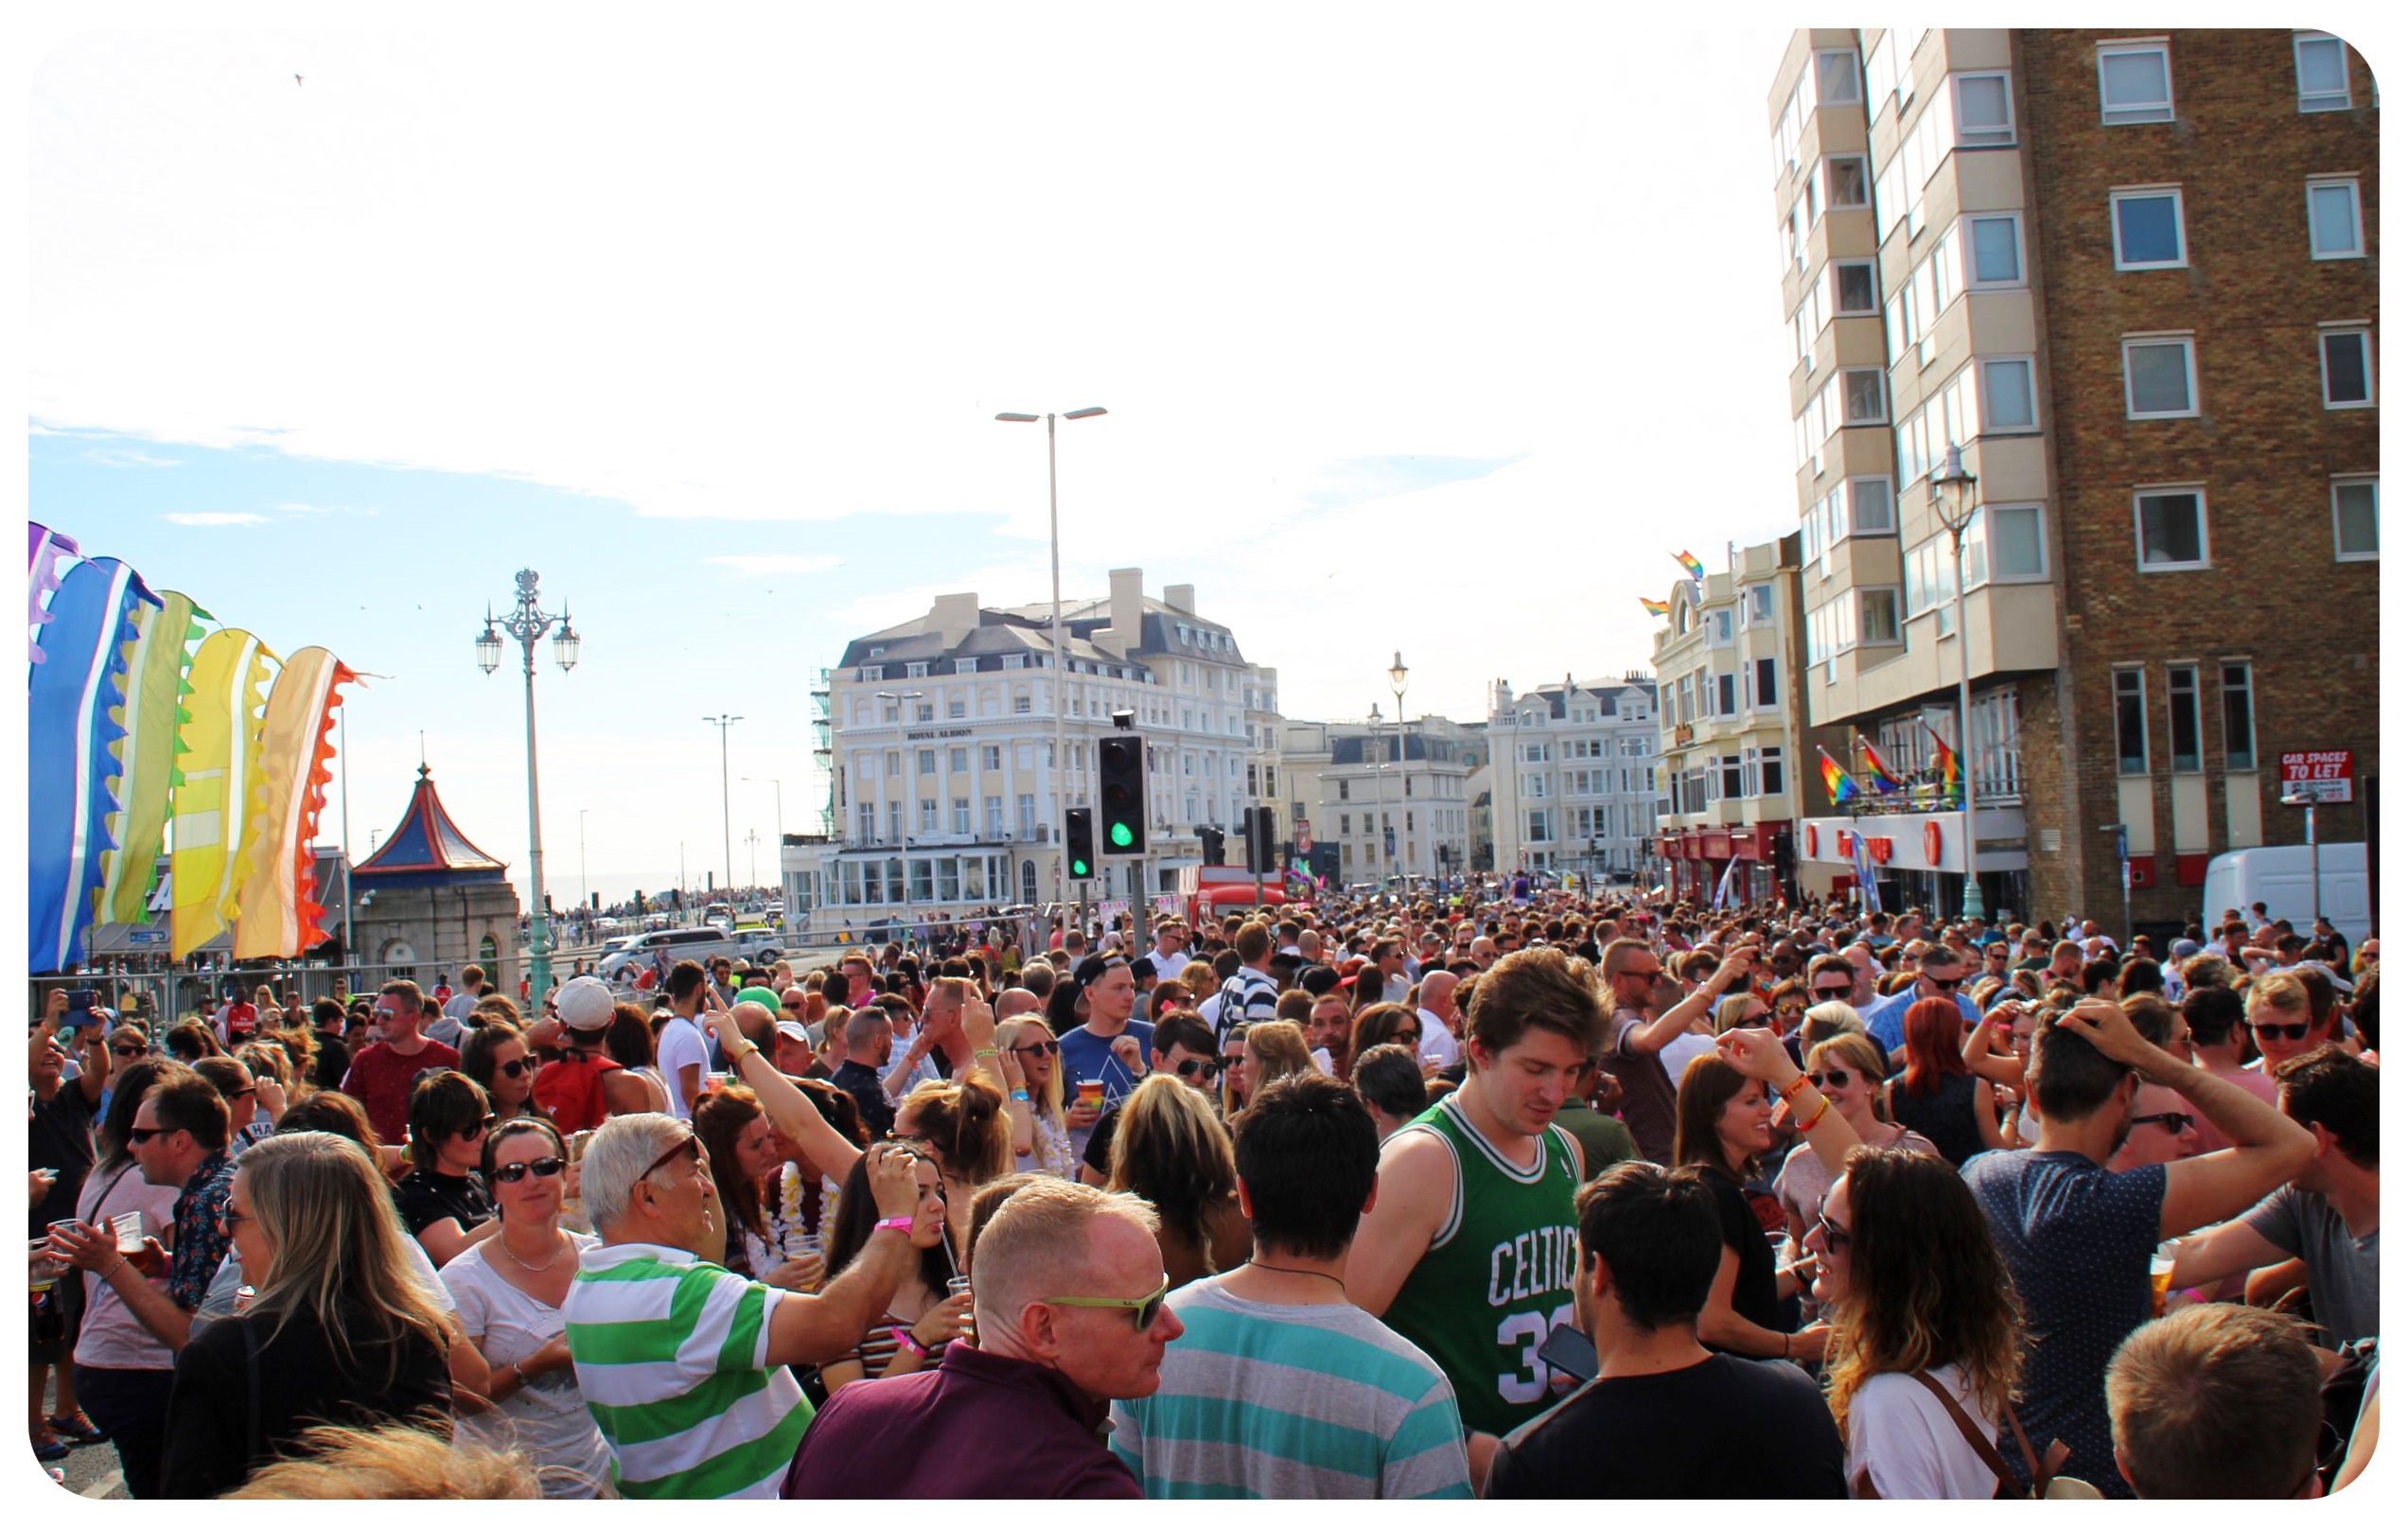 brighton pride street party 2015 crowds